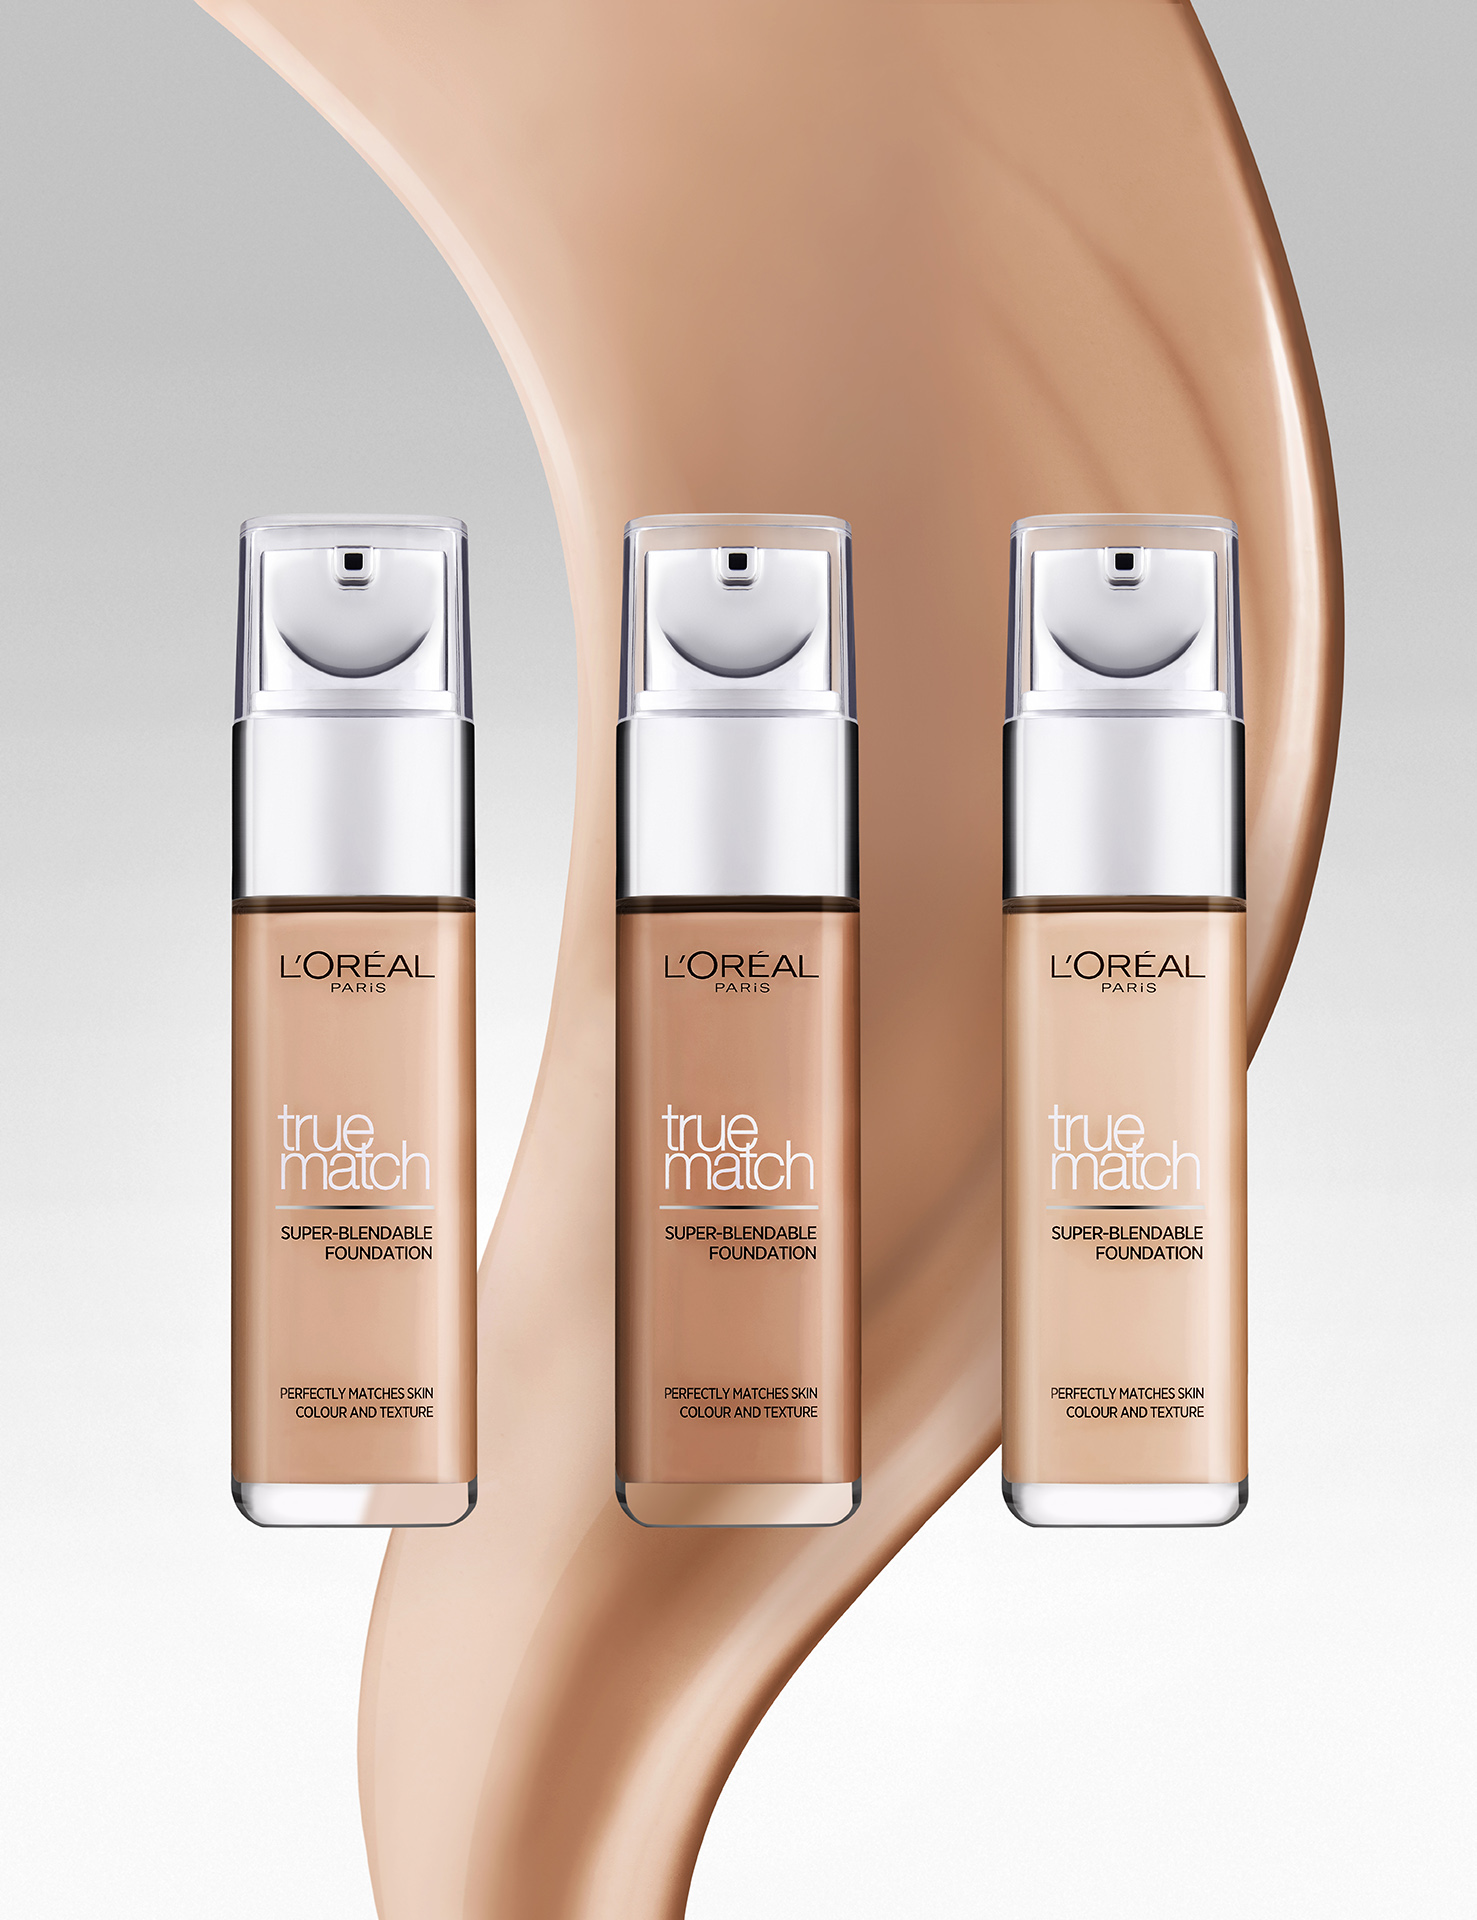 loreal-foundation-make-up-true-match-cosmetics-photography-still-life-commercial-1.jpg